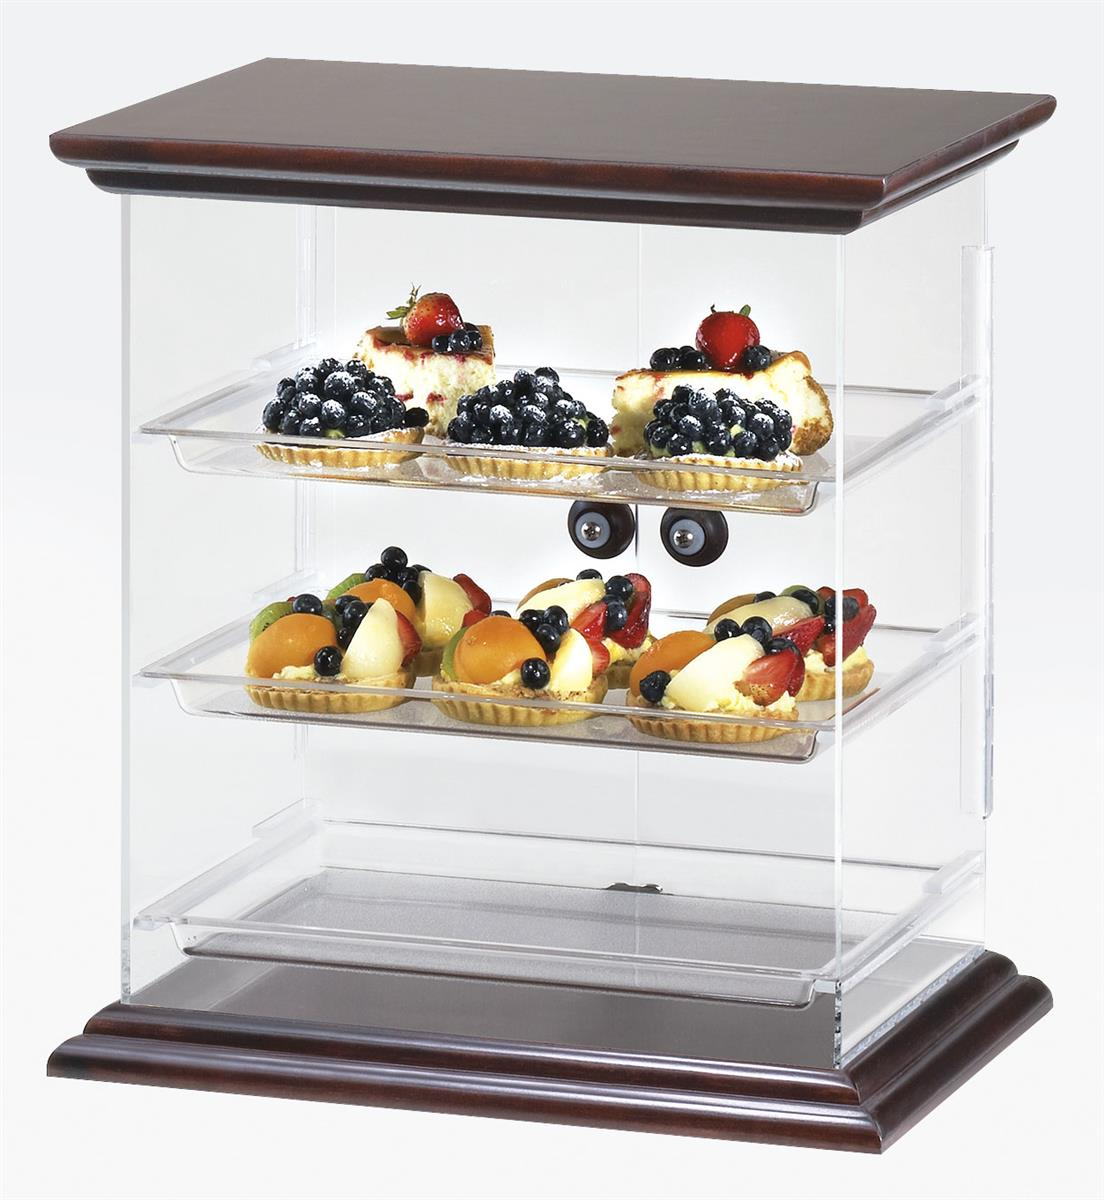 Countertop Bakery Case Bakery Display Wooden Top And Base W Removable Trays